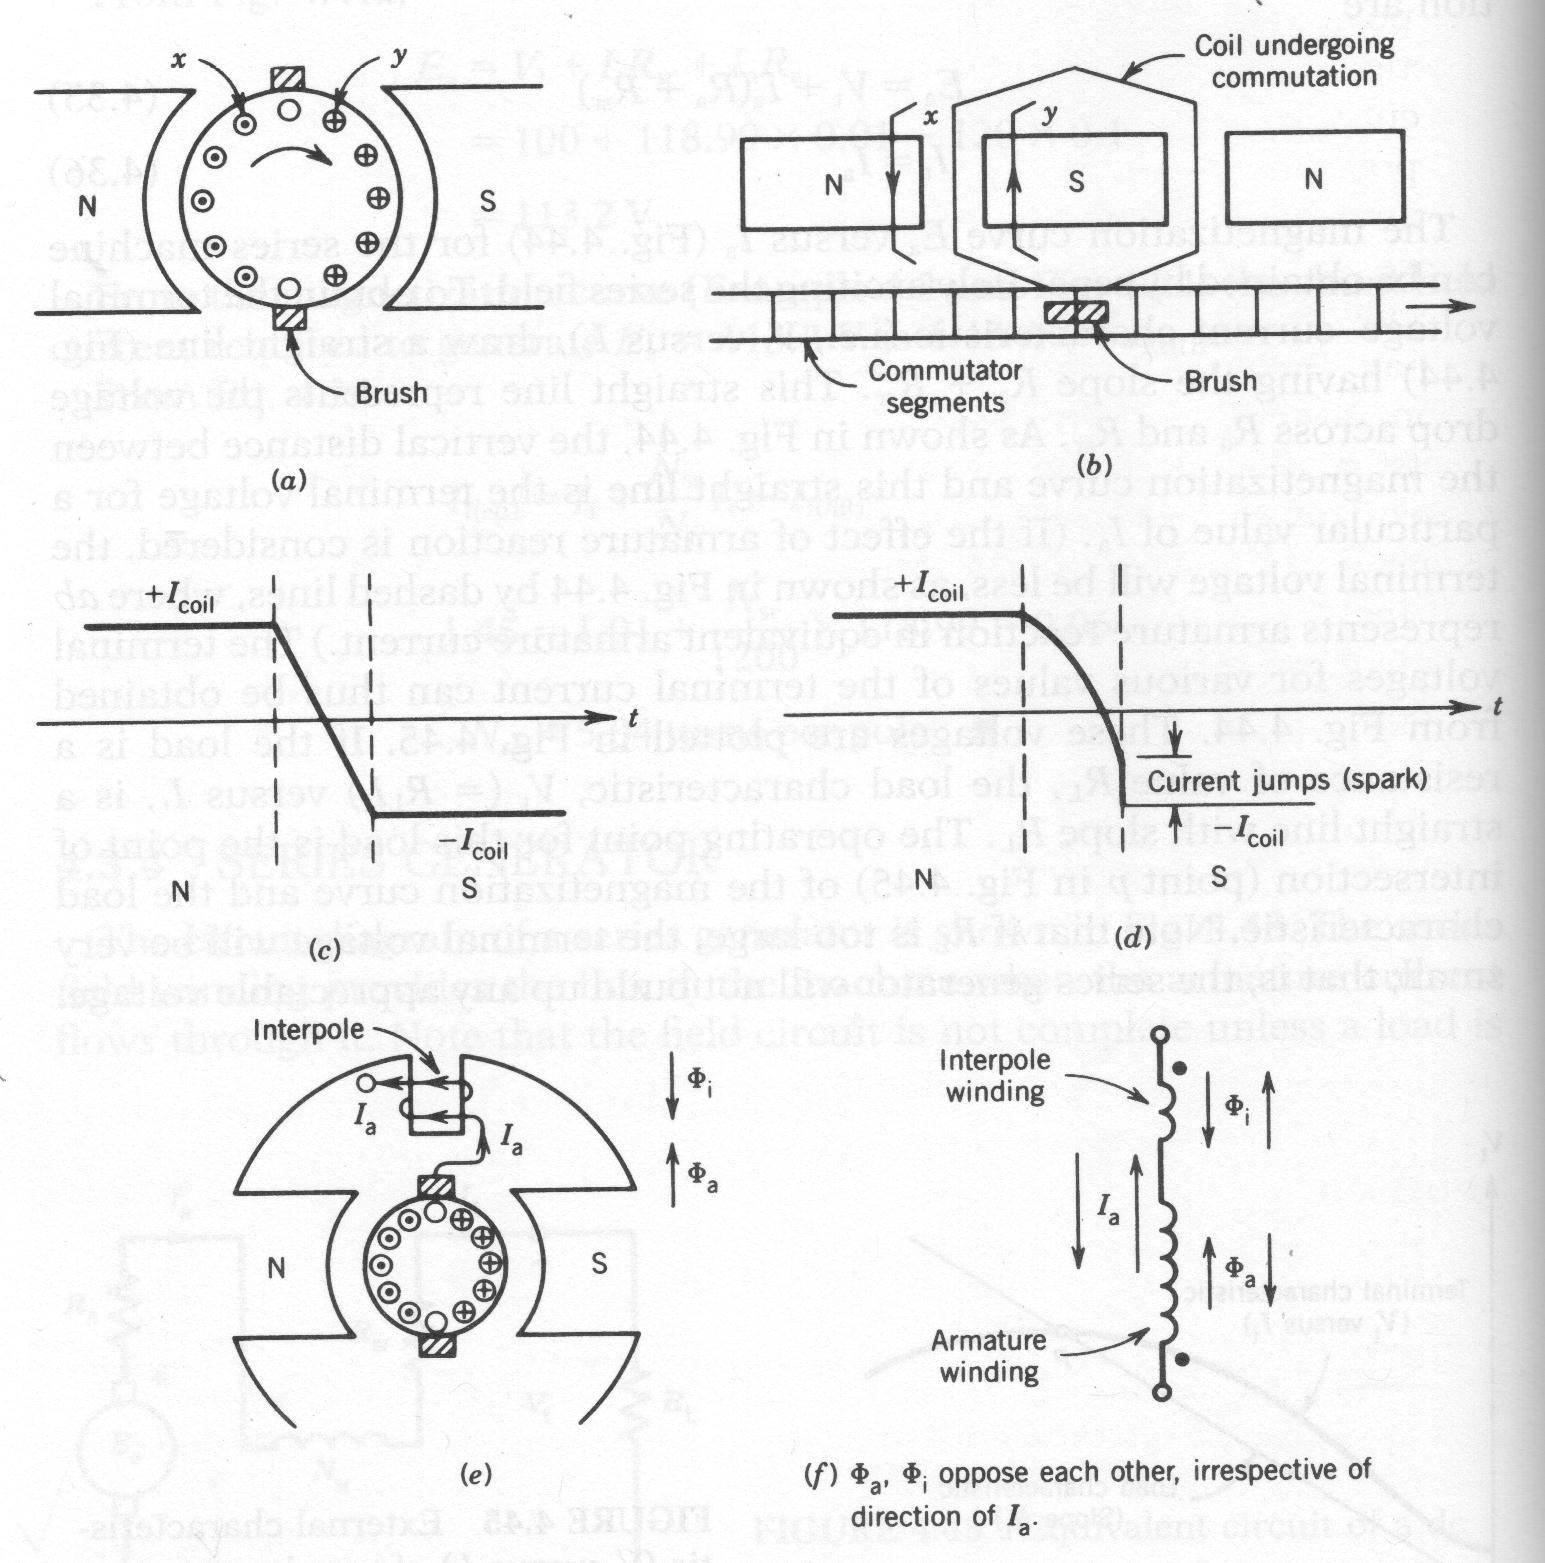 Engineering Student Interpoles Or Commutator Poles